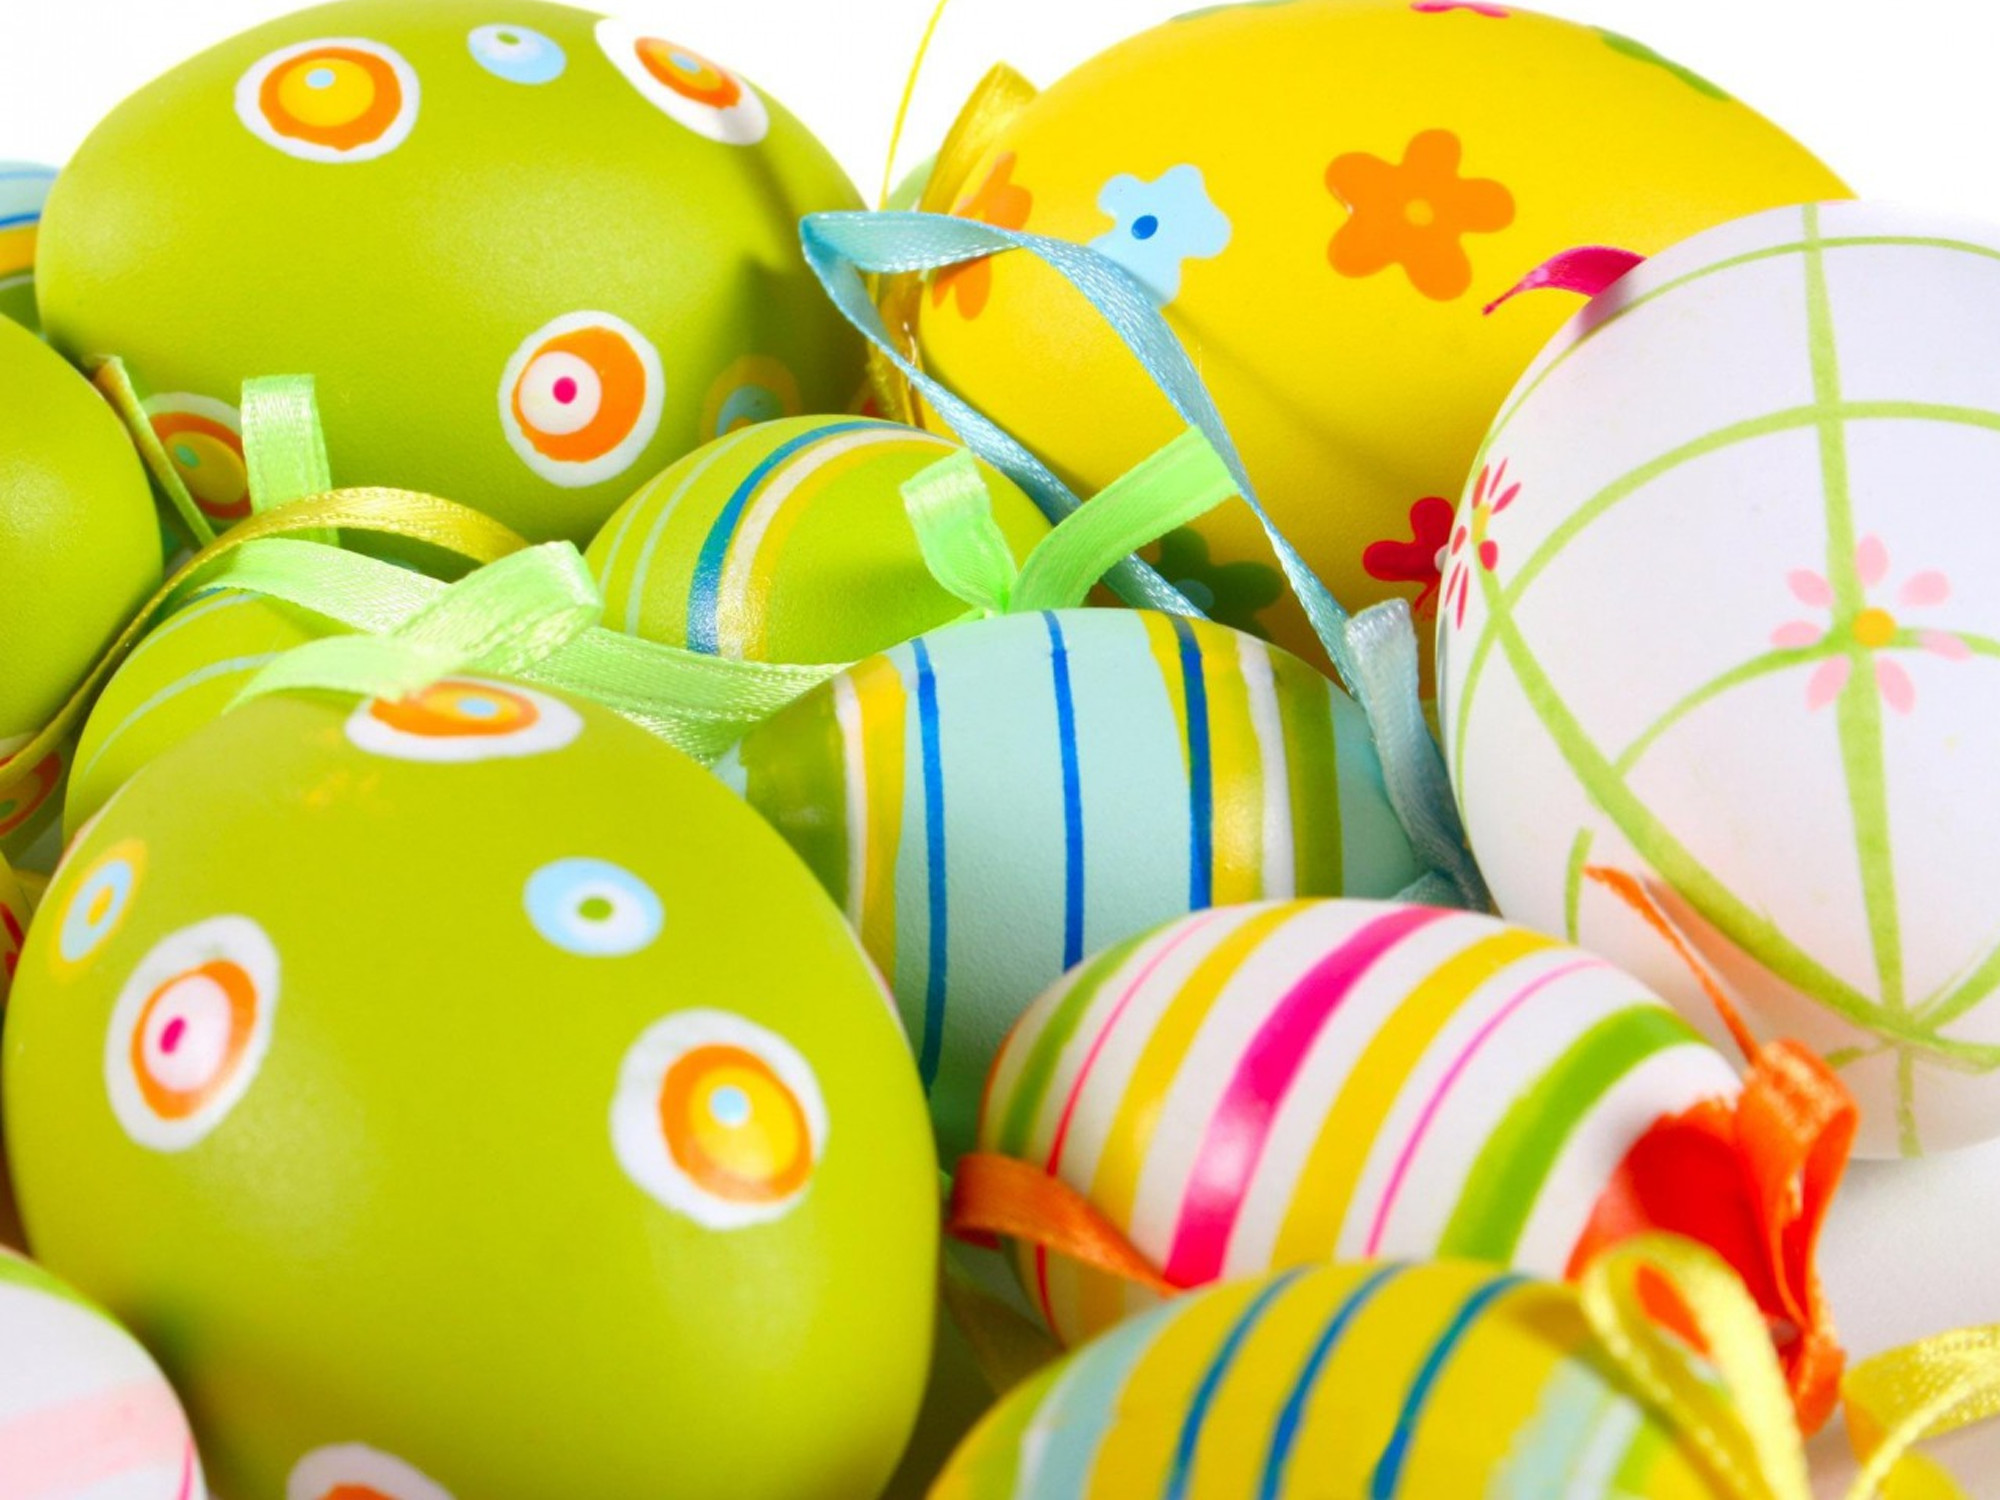 2560x1600 Easter A Wallpaper Free